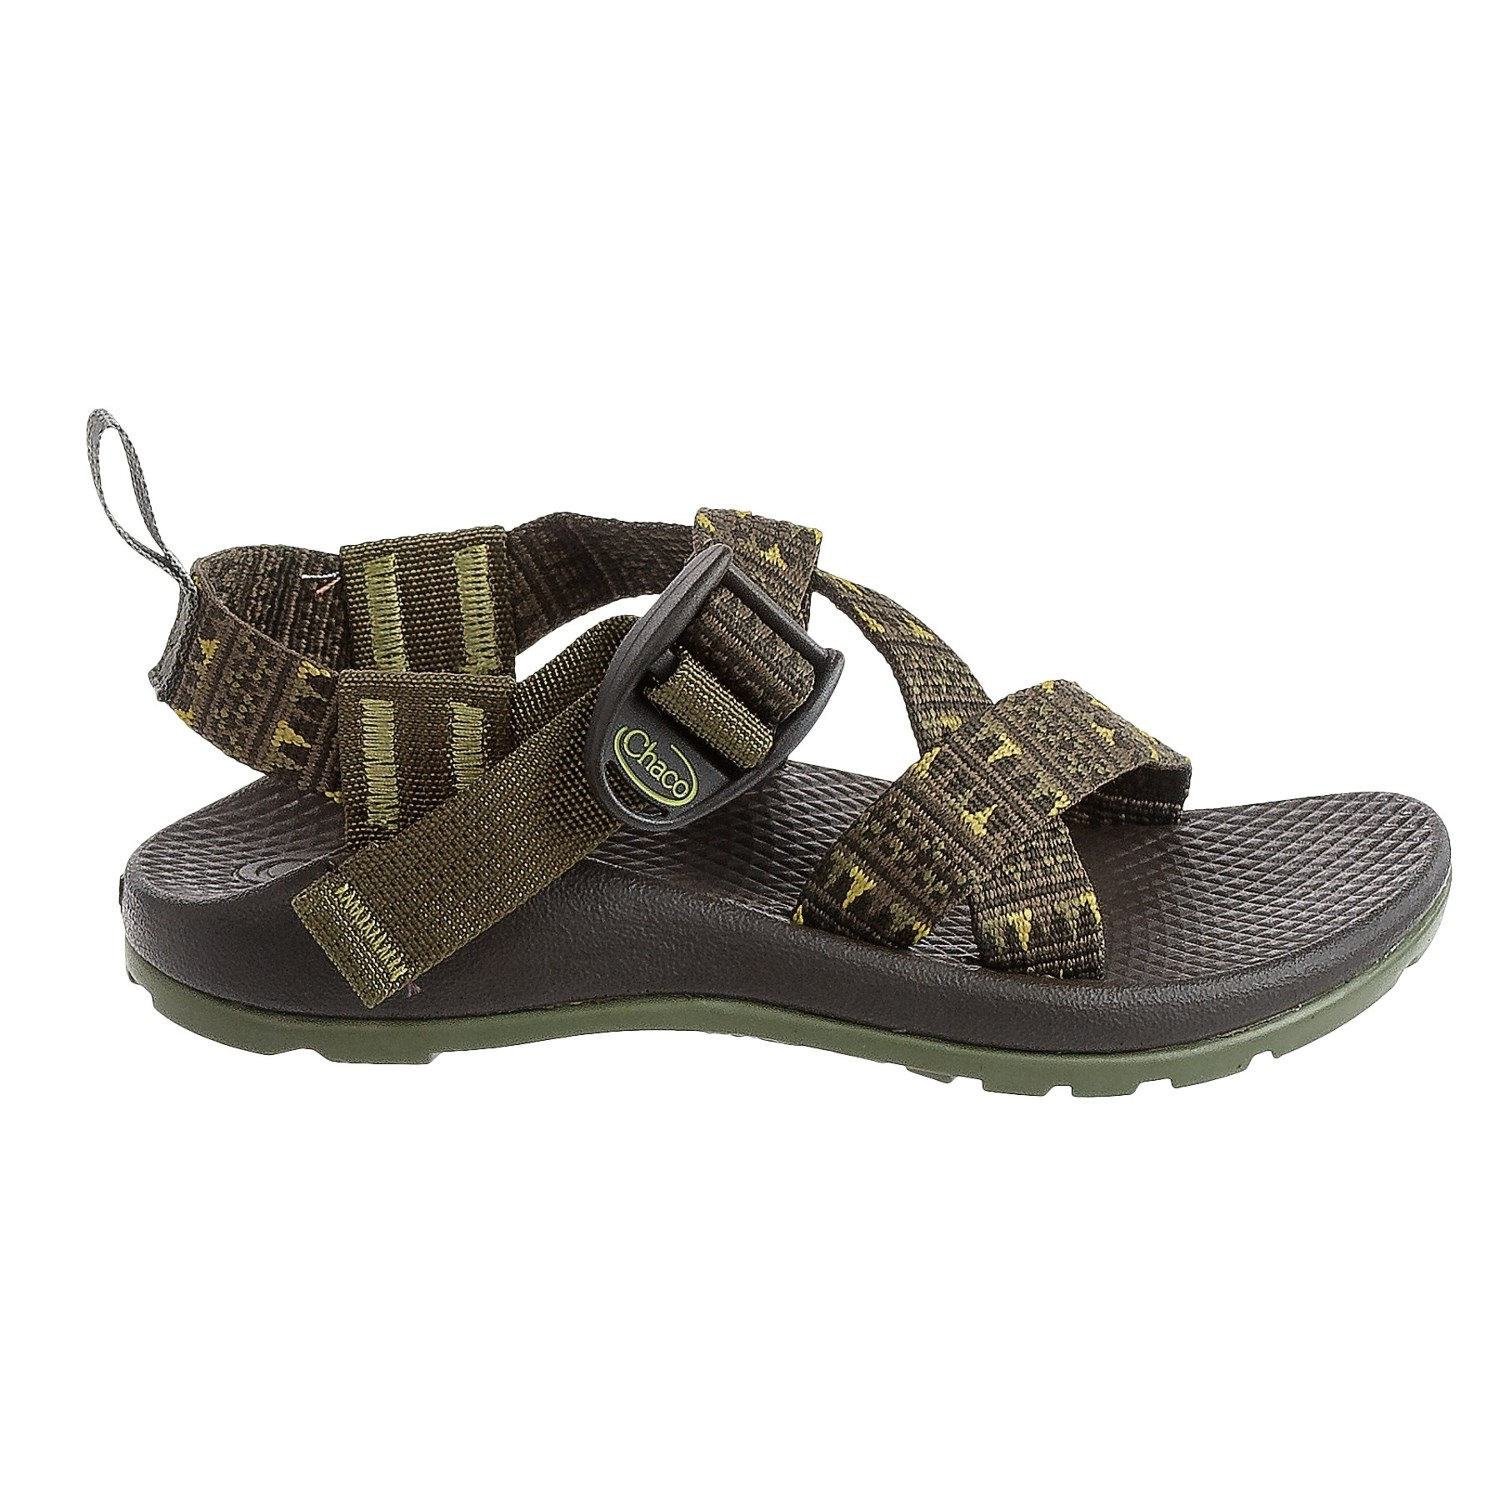 354f31c55853 Chaco Z1 EcoTread Sandals (For Little and Big Kids) - Save 45%